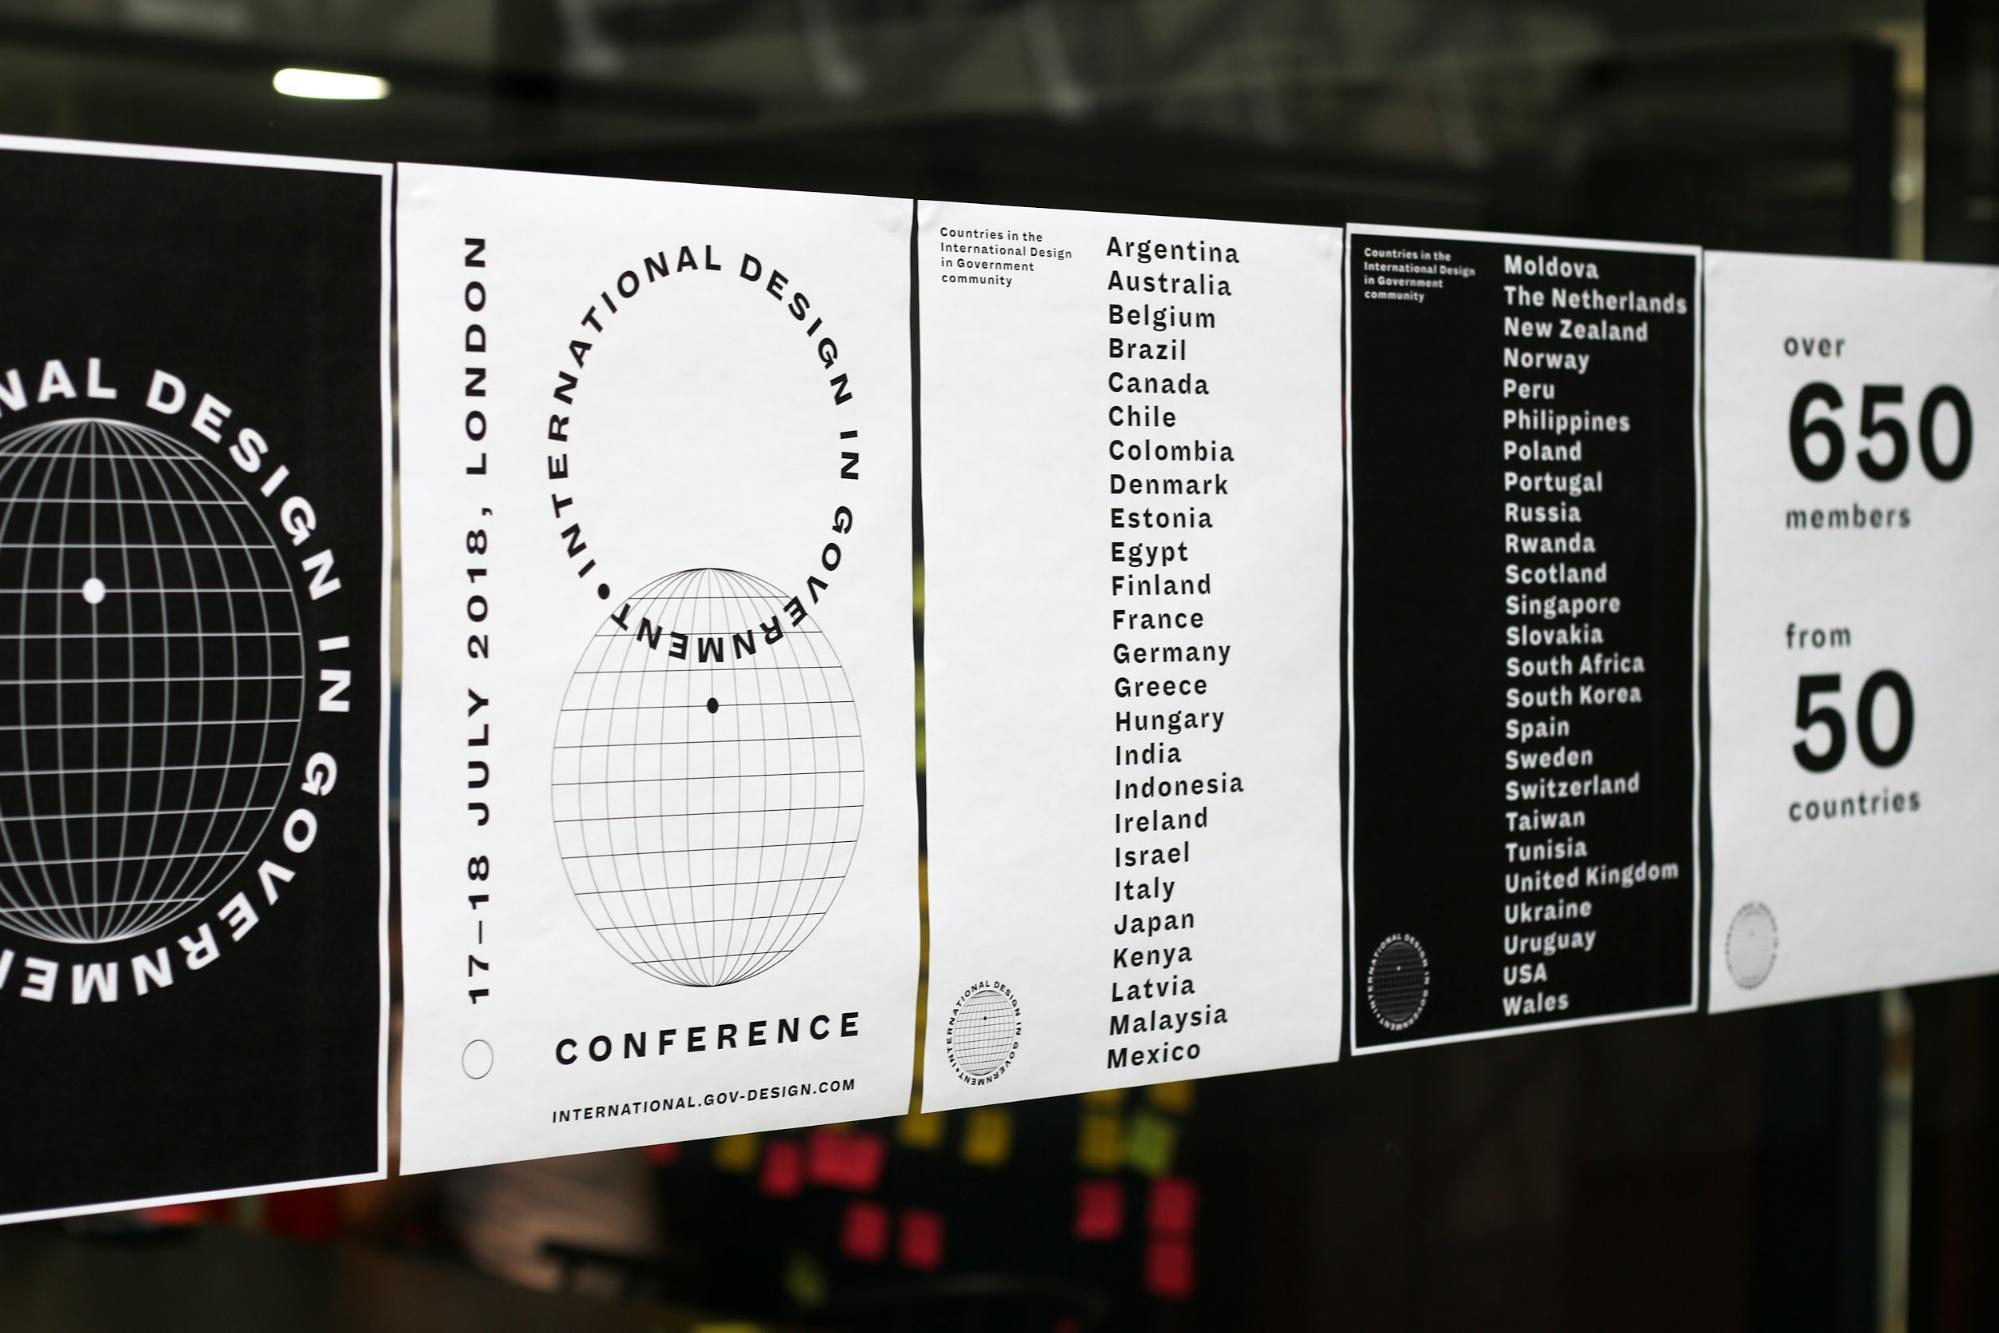 A series of posters for the International Design in Government Conference, listing the 50 countries that are members of the International Design in Government community